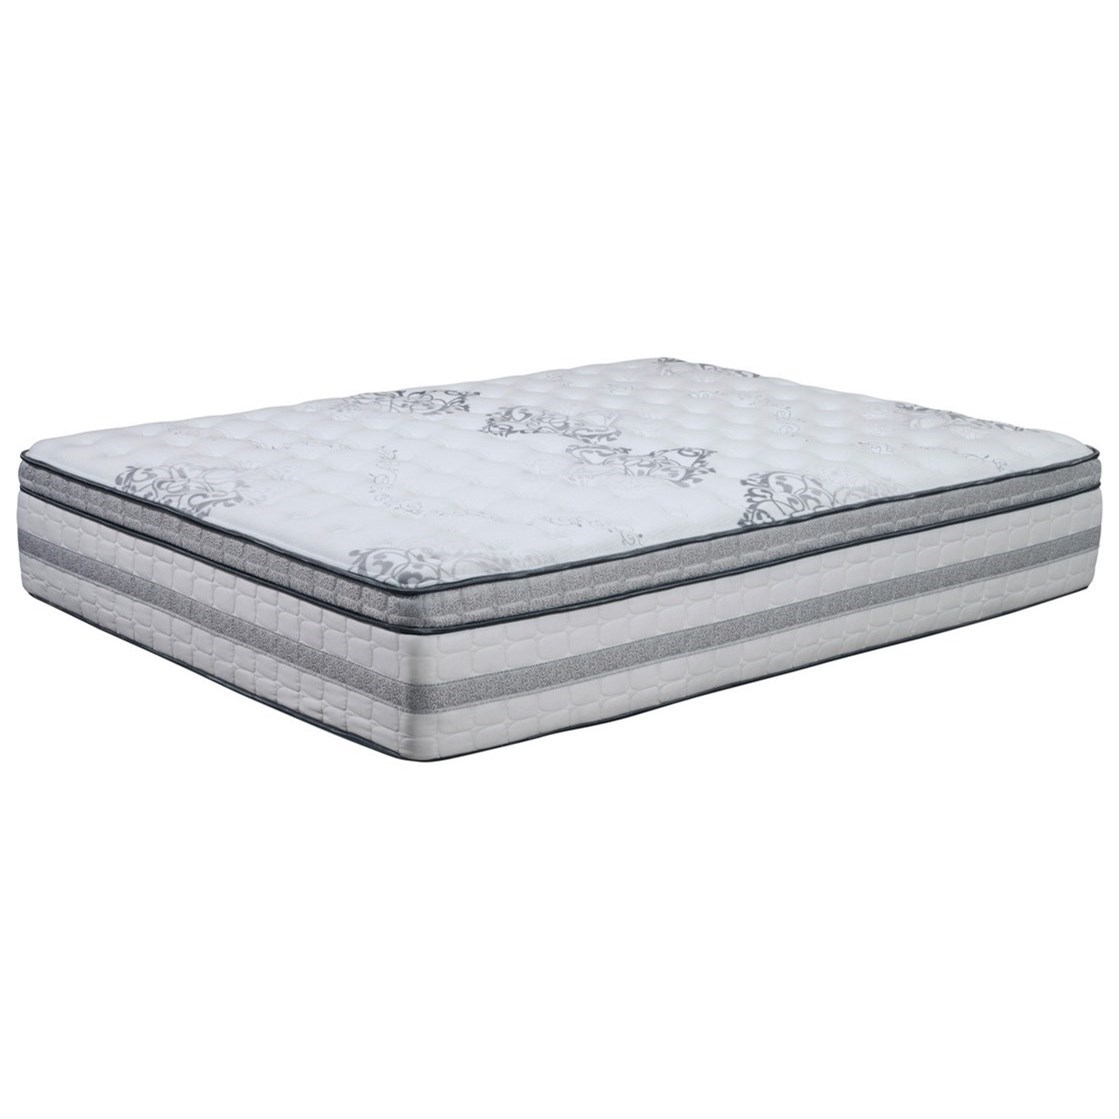 Signature ET Plush Queen Plush Pocketed Coil Mattress by Sleep Shop Mattress at Del Sol Furniture